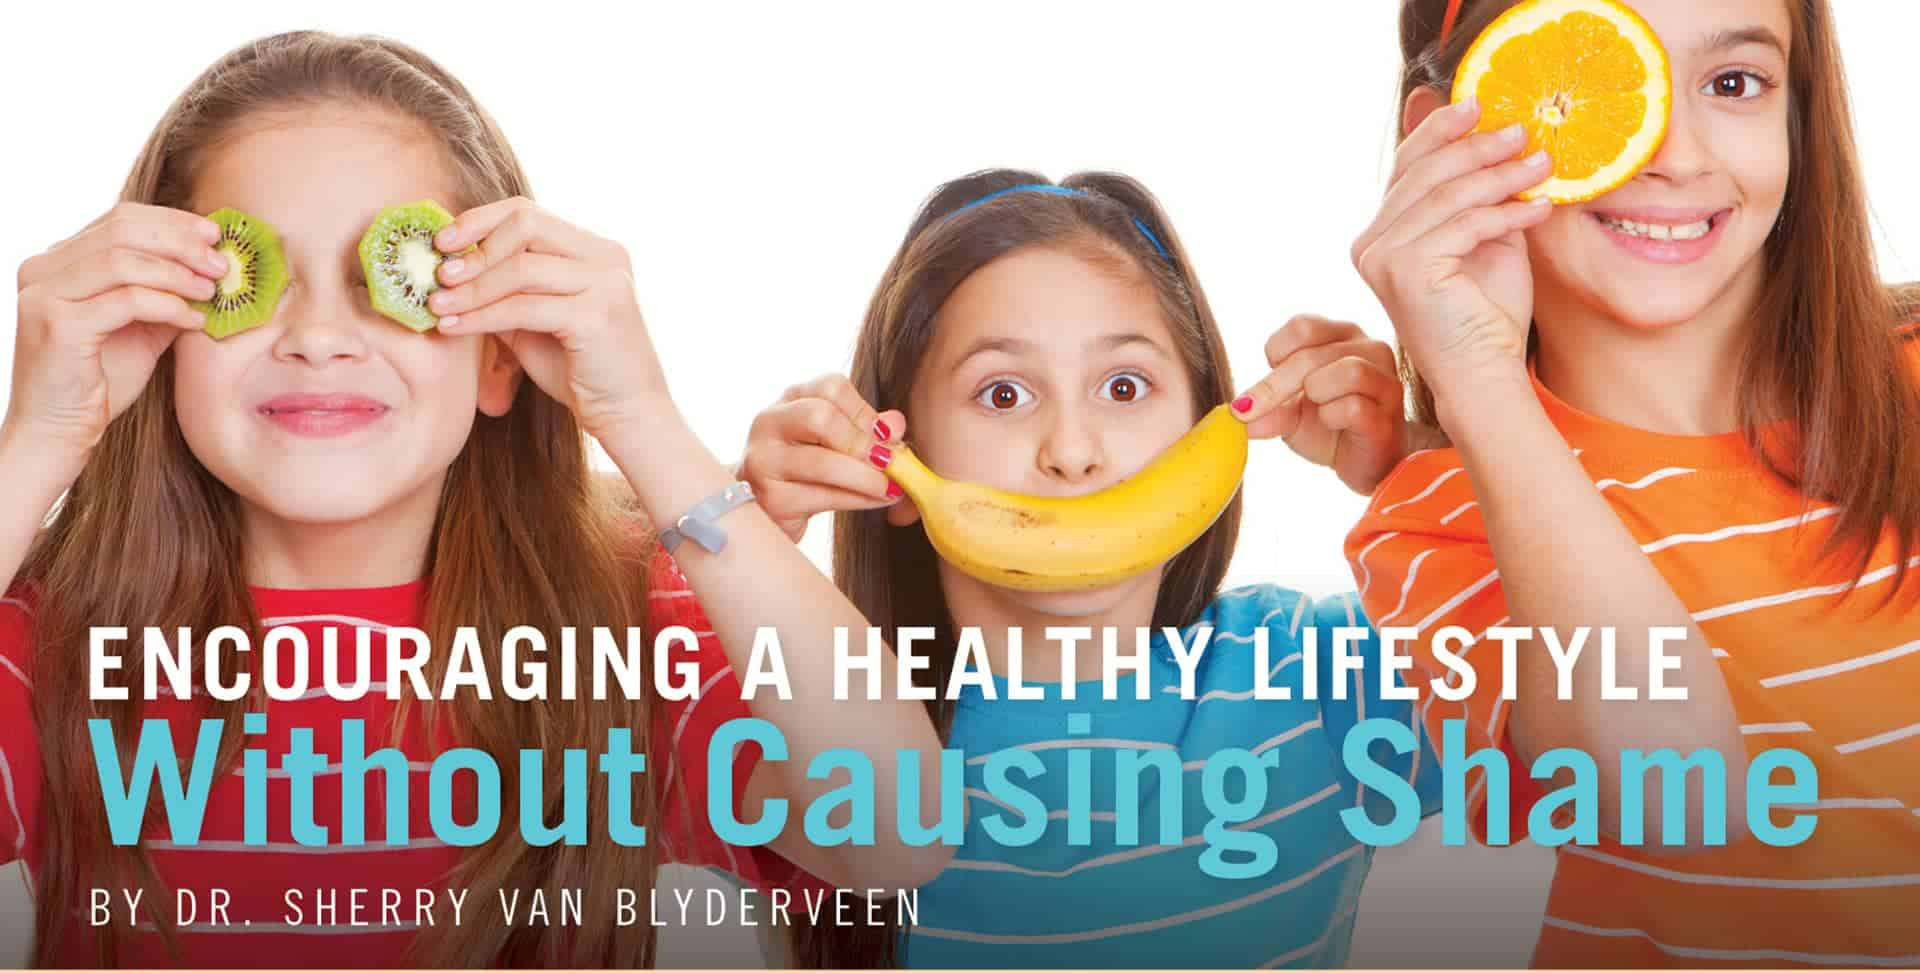 Portray of three young girls with long brown hair. The one in a red shirt covers her eyes with 2 slices of kiwi, the one in blue shirt covers her lips with banana, the tall girl in orange shirt covers her left eye with a round slice of an orange